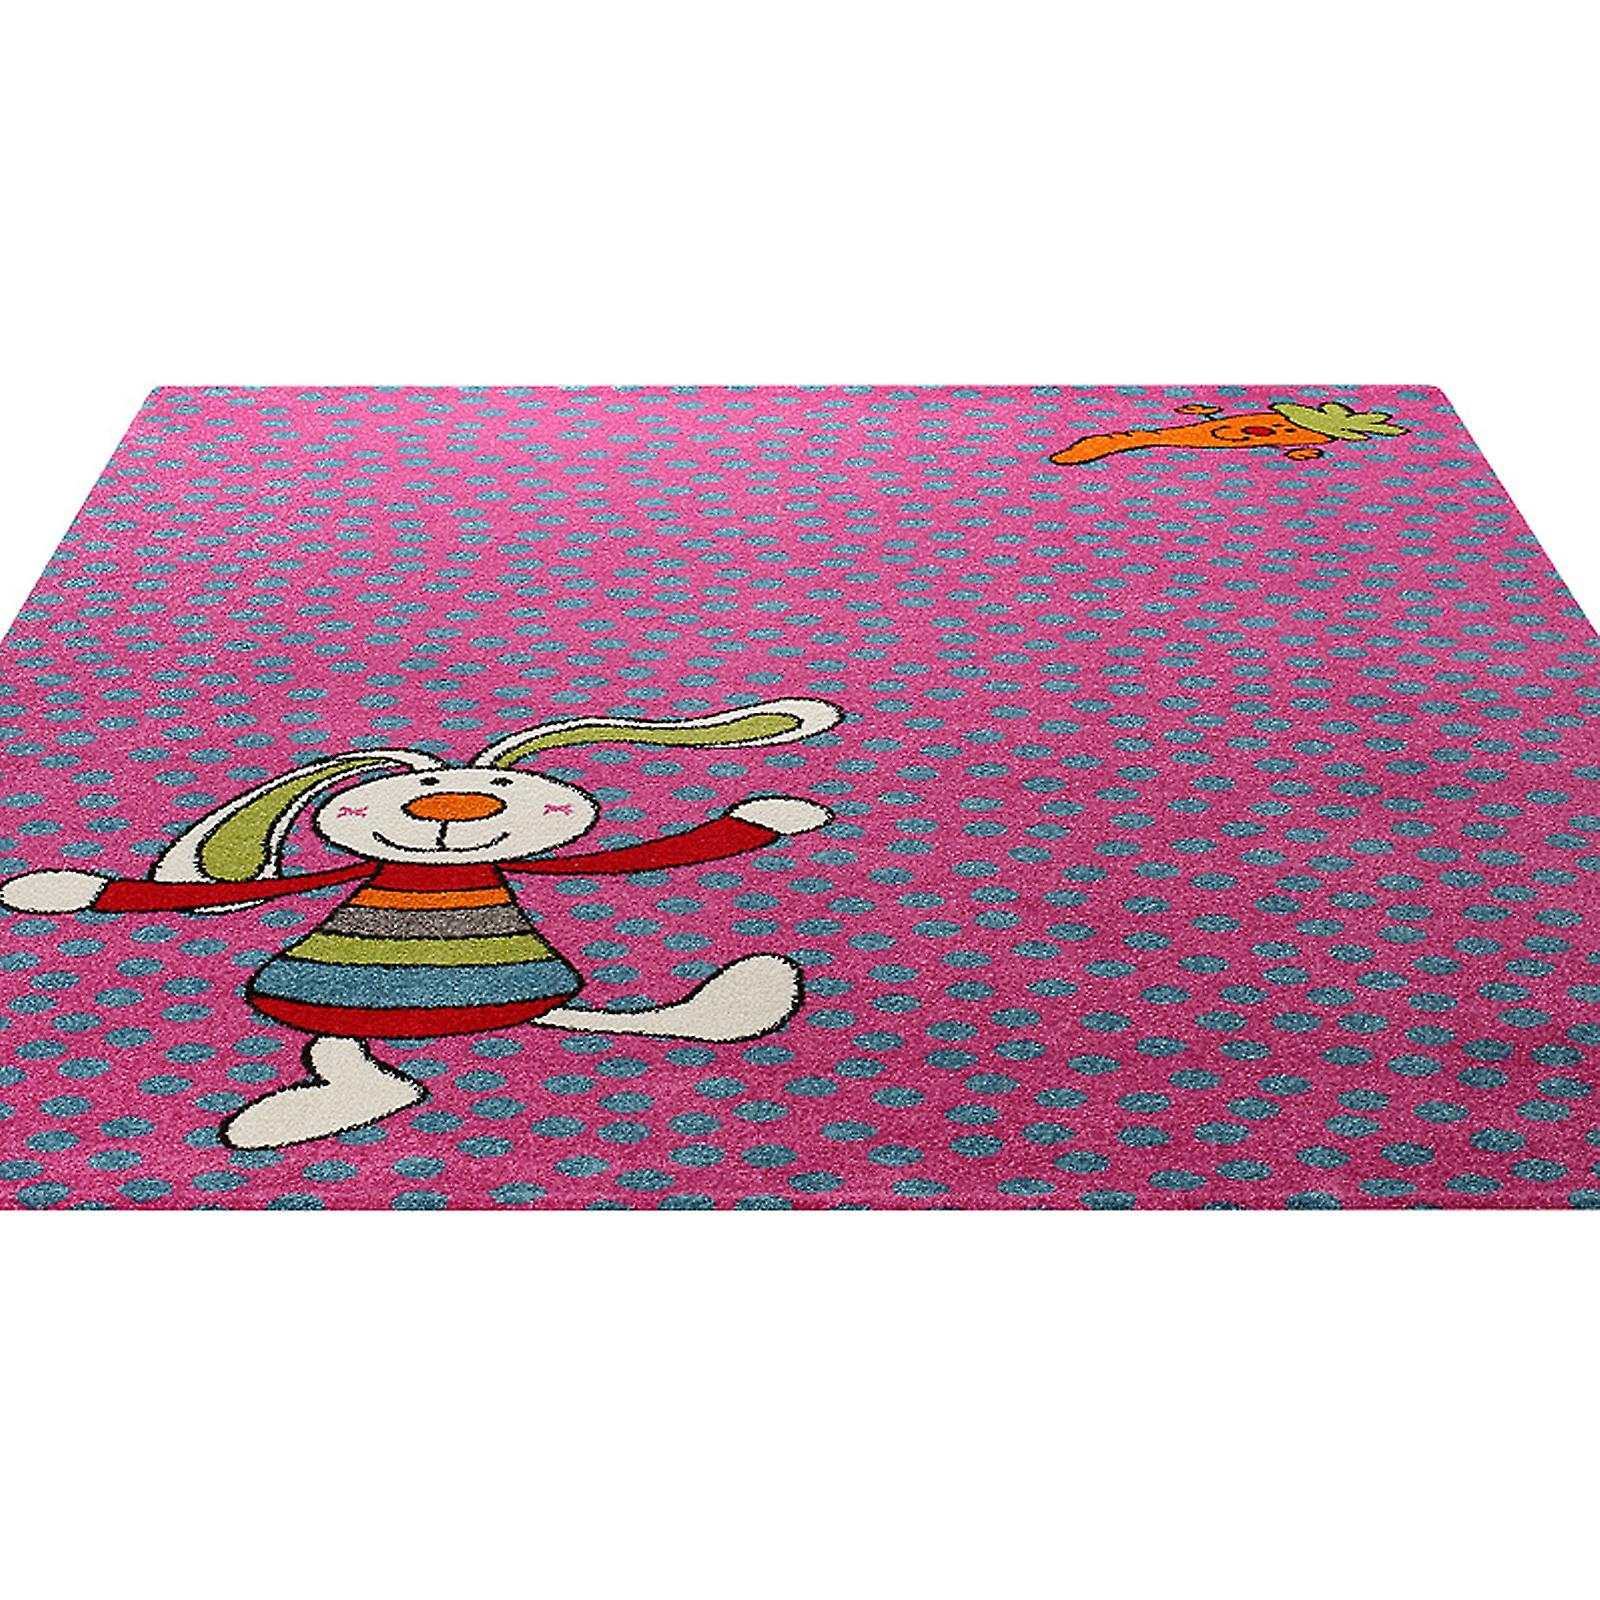 Rainbow Rabbit Rug In Pink 0523 03